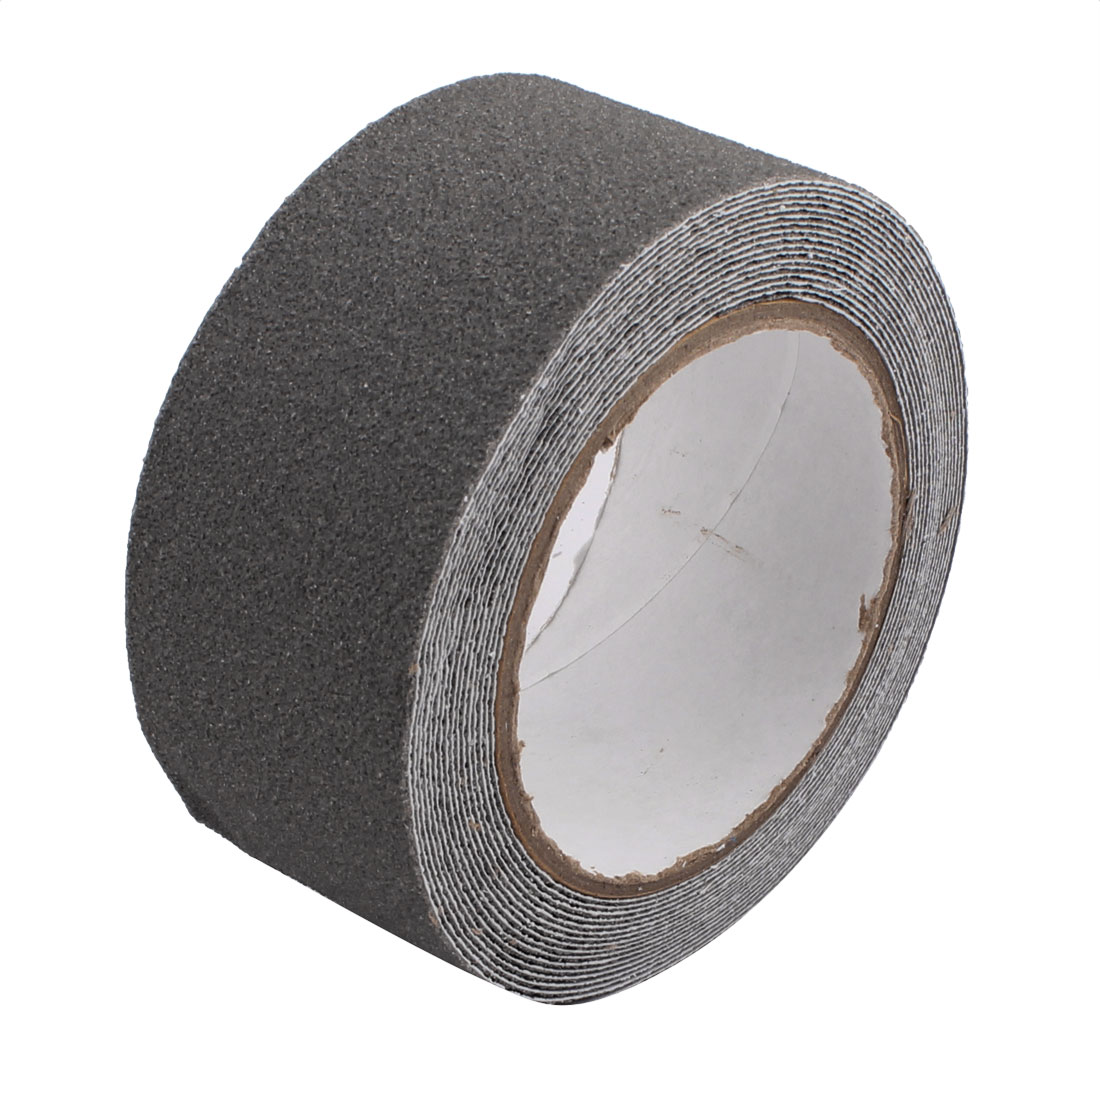 2Pcs Gray Anti-Slip Grip Tape Safety High Traction Indoor Outdoor 50mmx5m